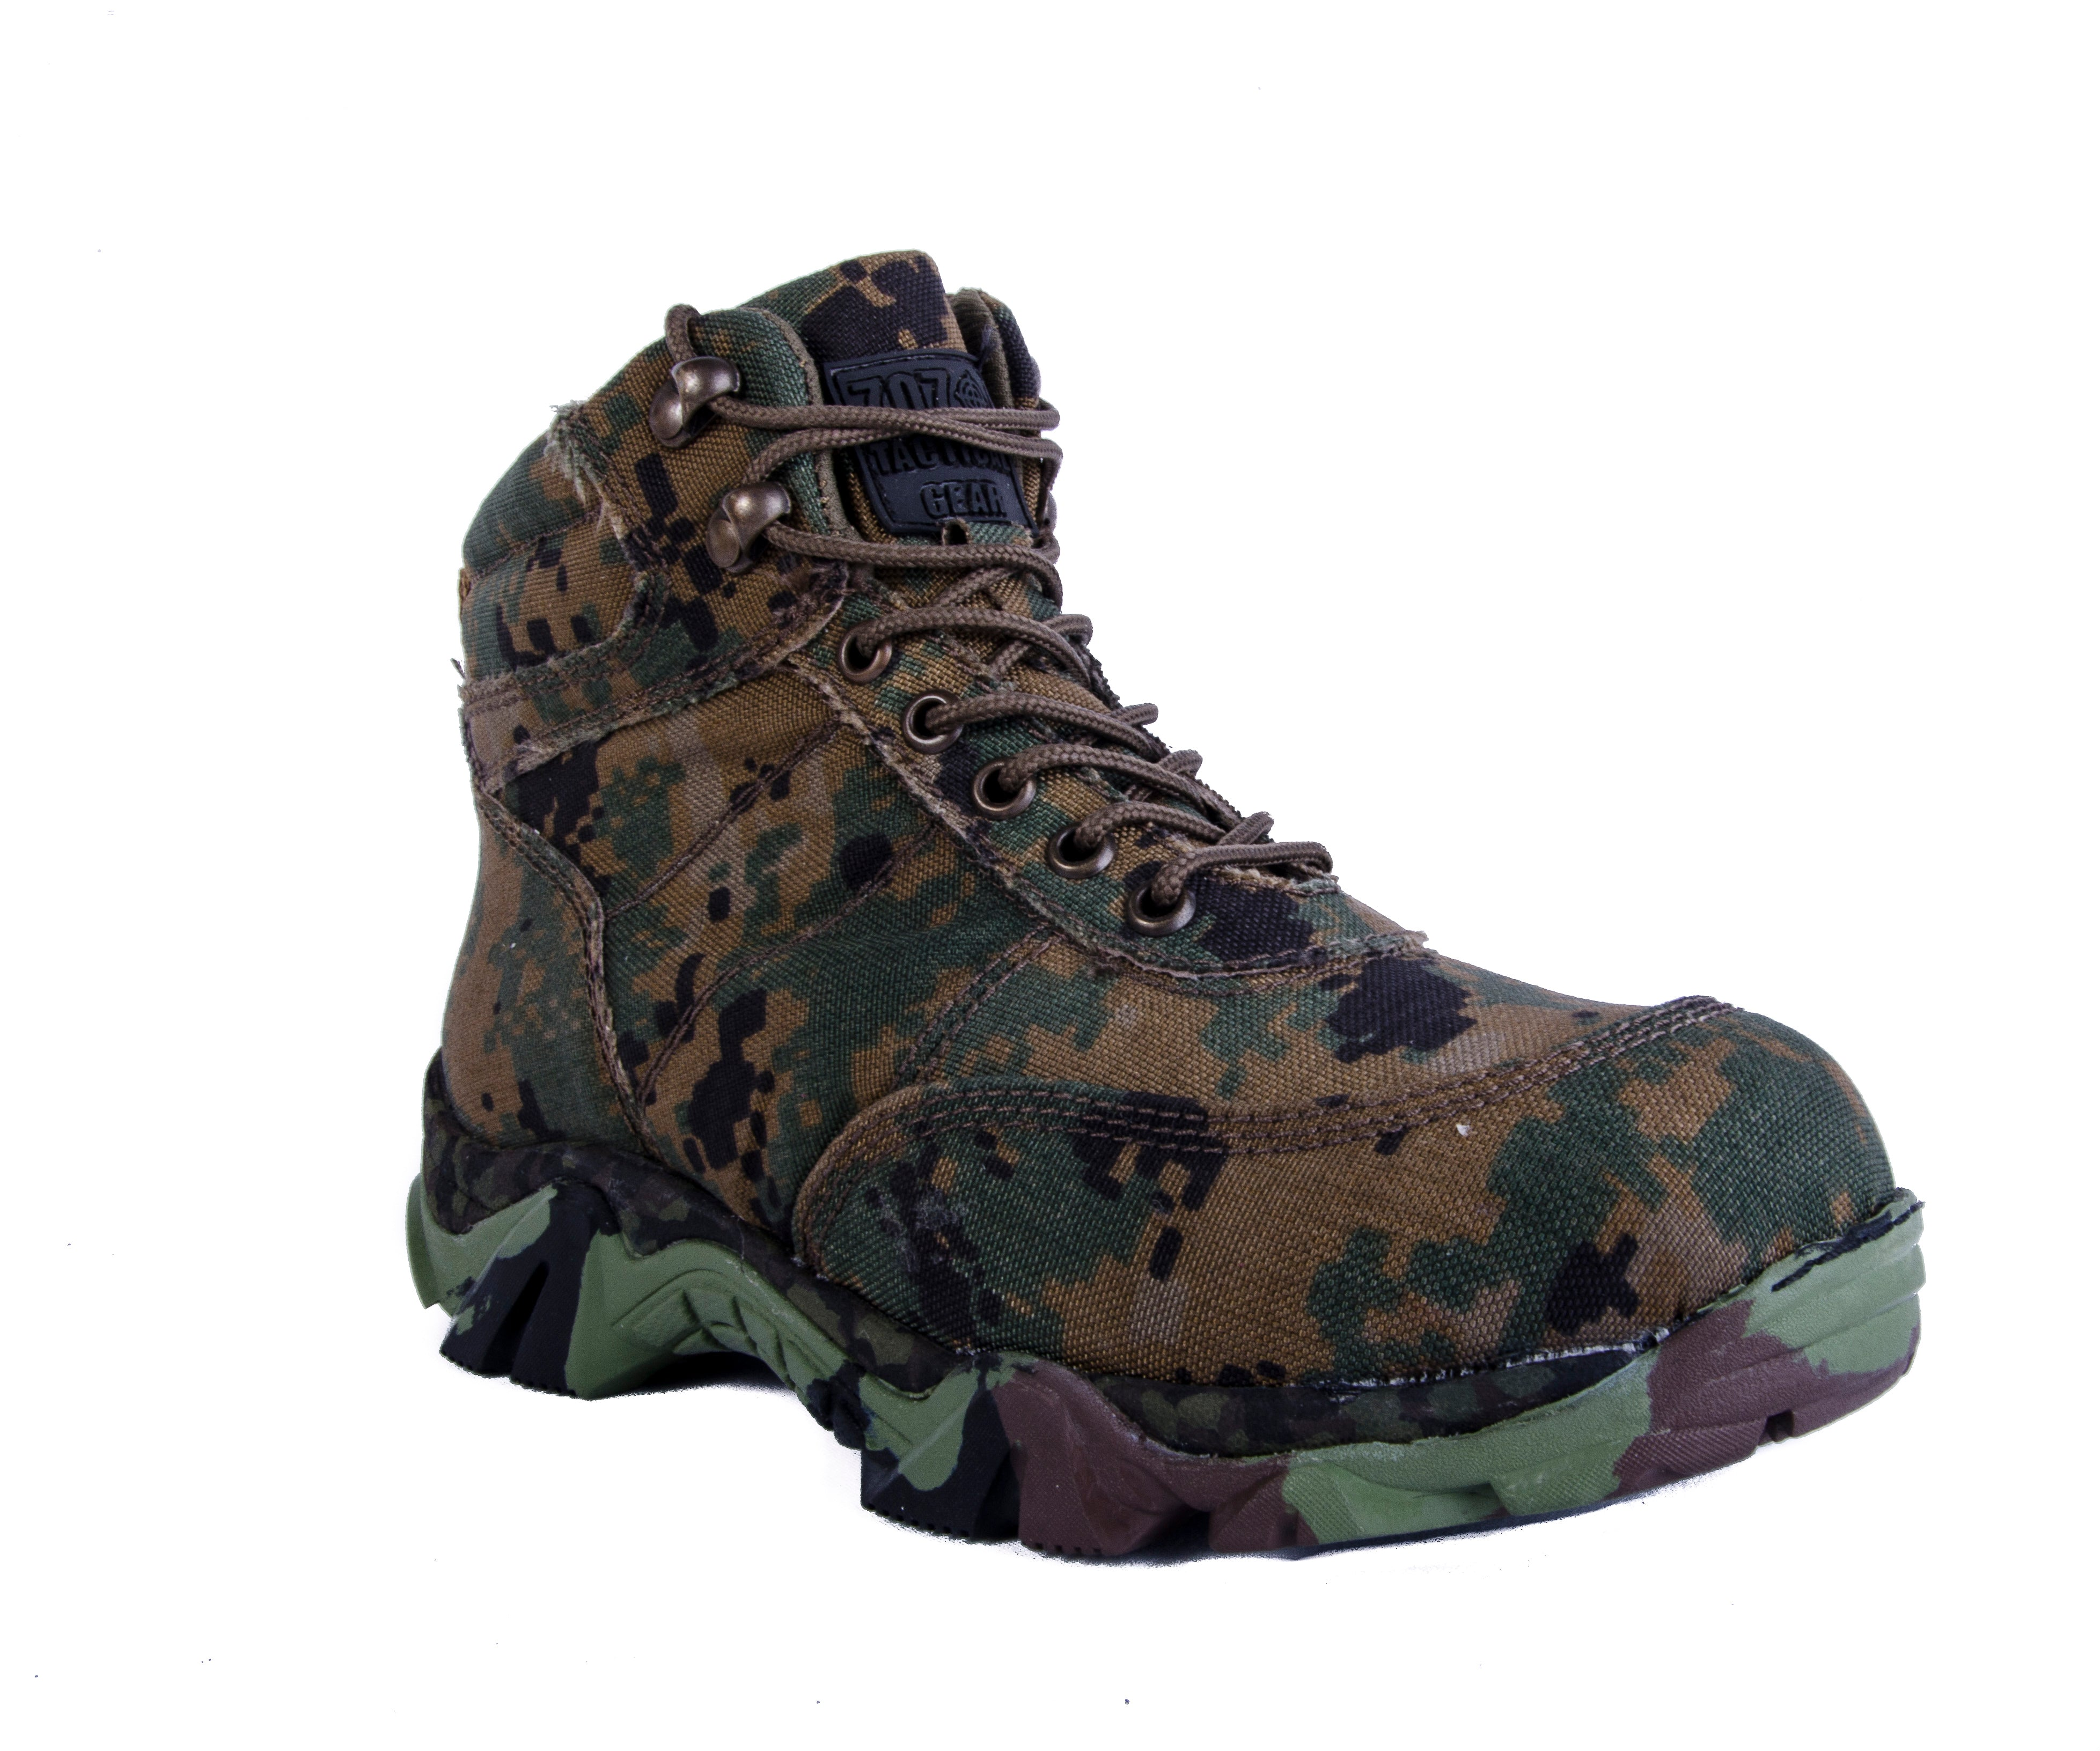 BOTAS TÁCTICAS D-FORCE STEALTH AIRLIGHT (WOODLAND) SIXKA